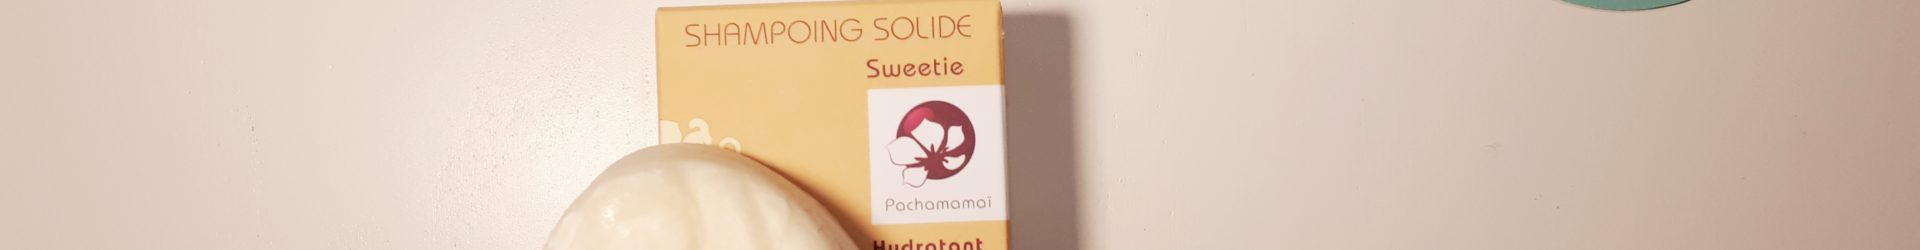 Pachamamaï – Shampoing démêlant solide Sweetie (65g)